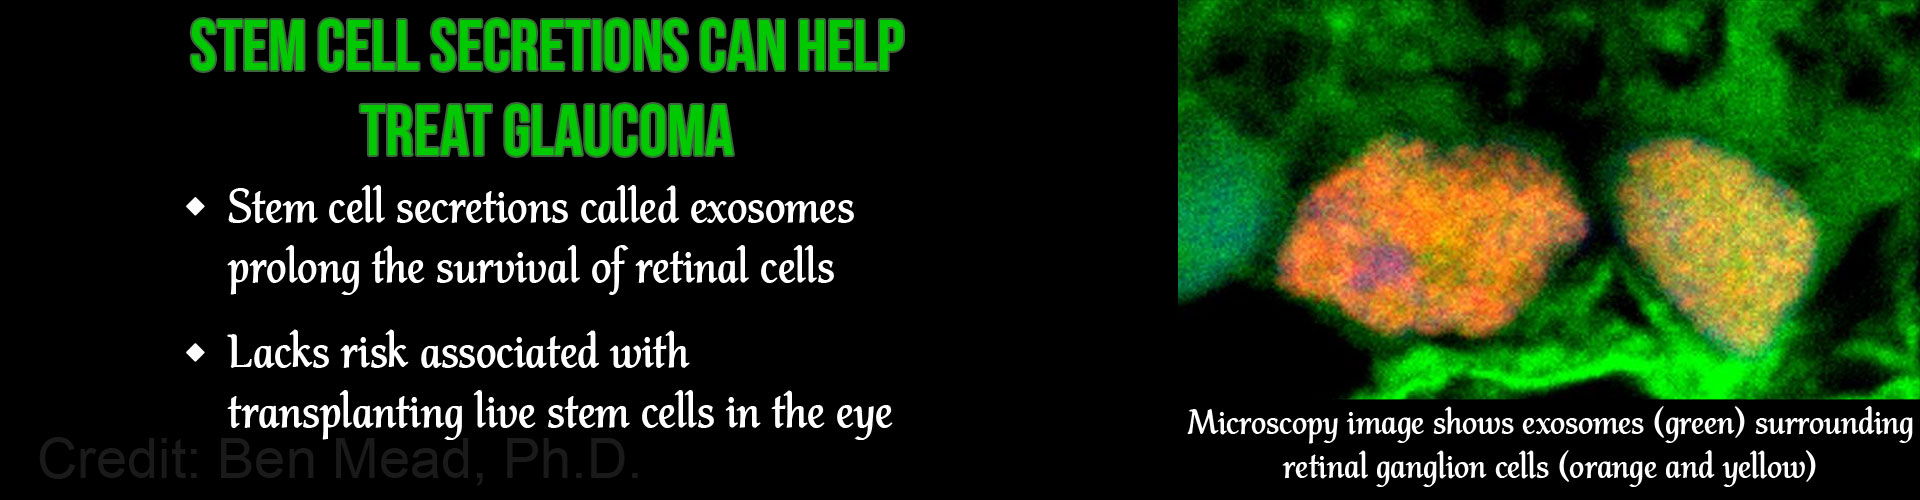 Glaucoma Can Be Treated With Stem Cell Secretions